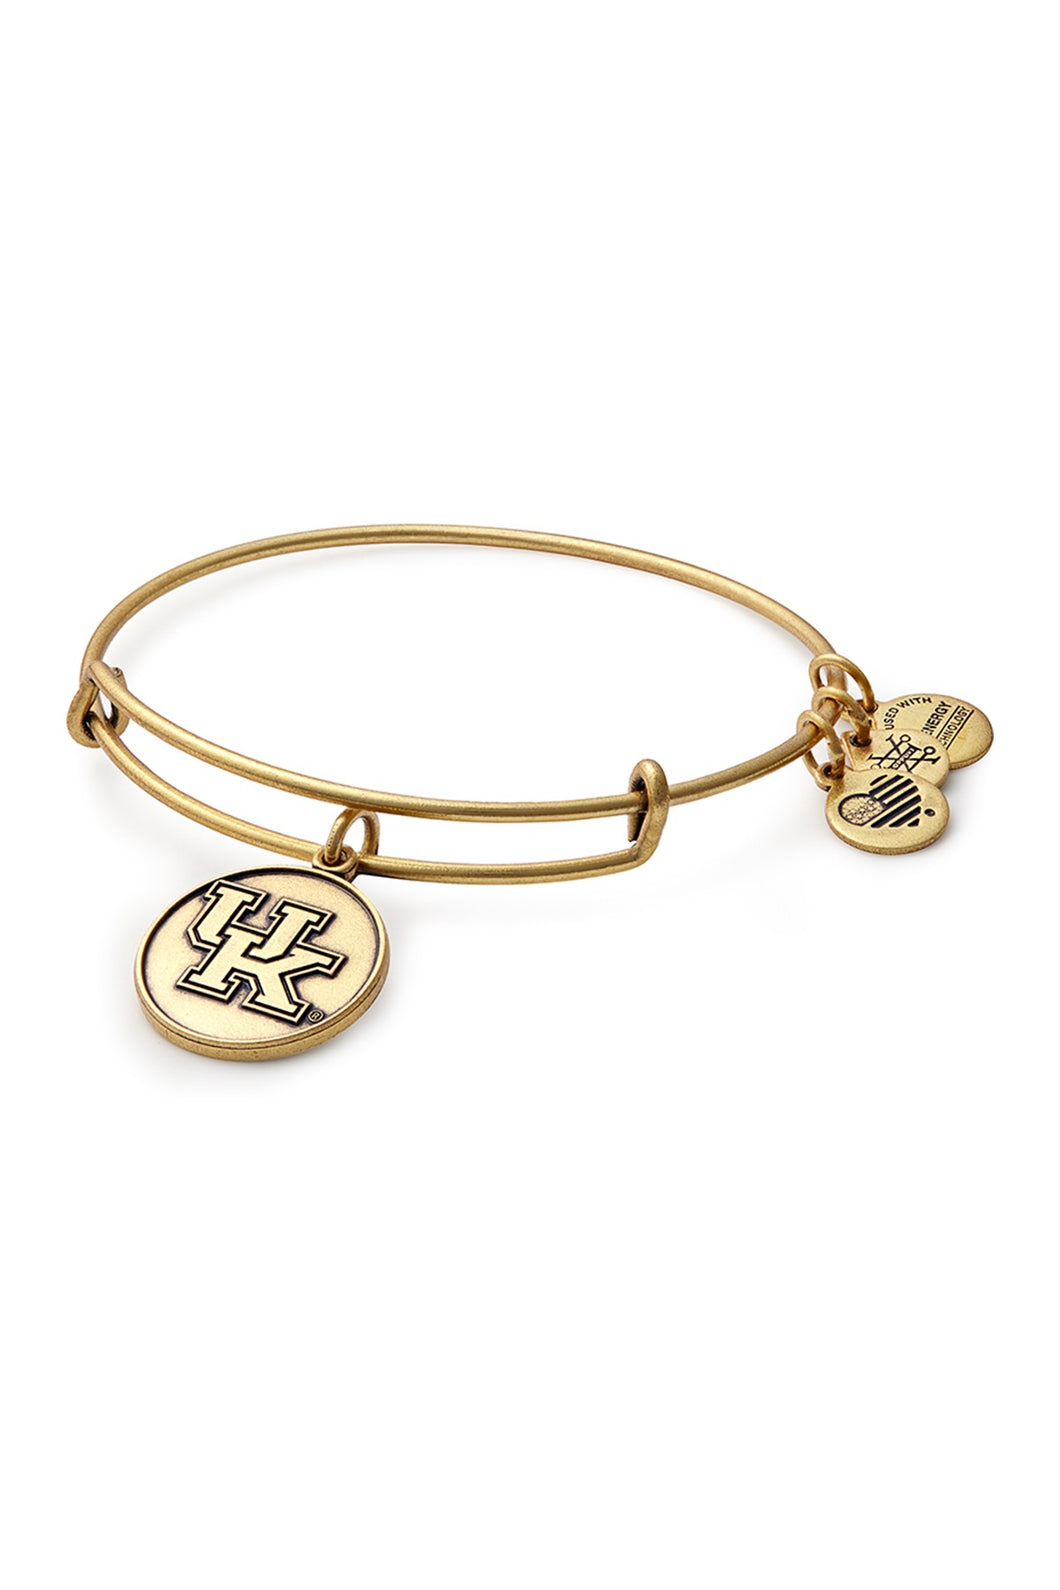 Alex and Ani University of Kentucky Charm Bangle